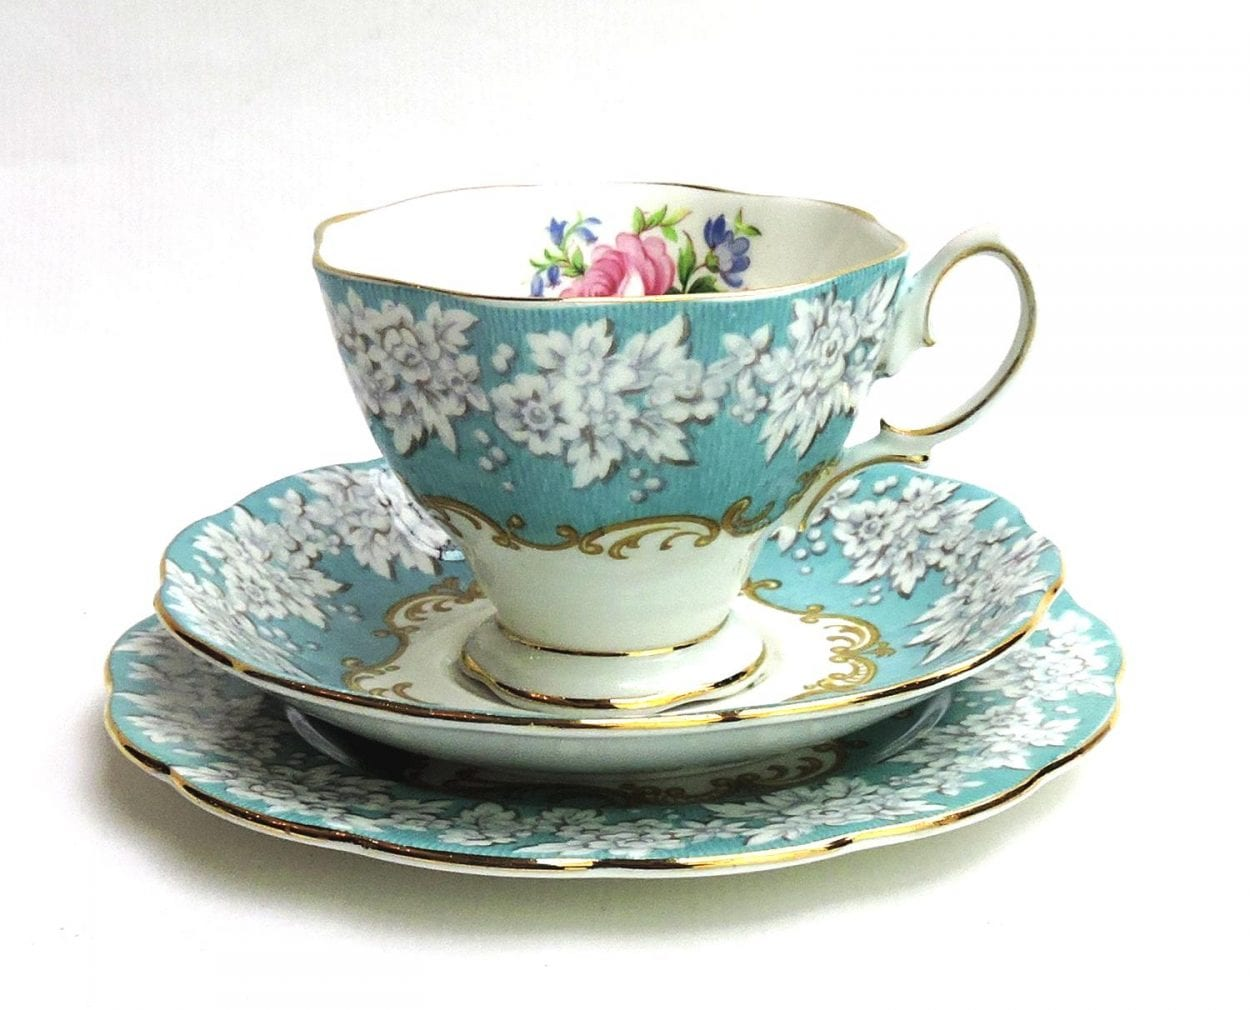 Royal Albert Bone China Cup Saucer And Plate Trio 2 Enchantment Pattern Bernardis Antiques